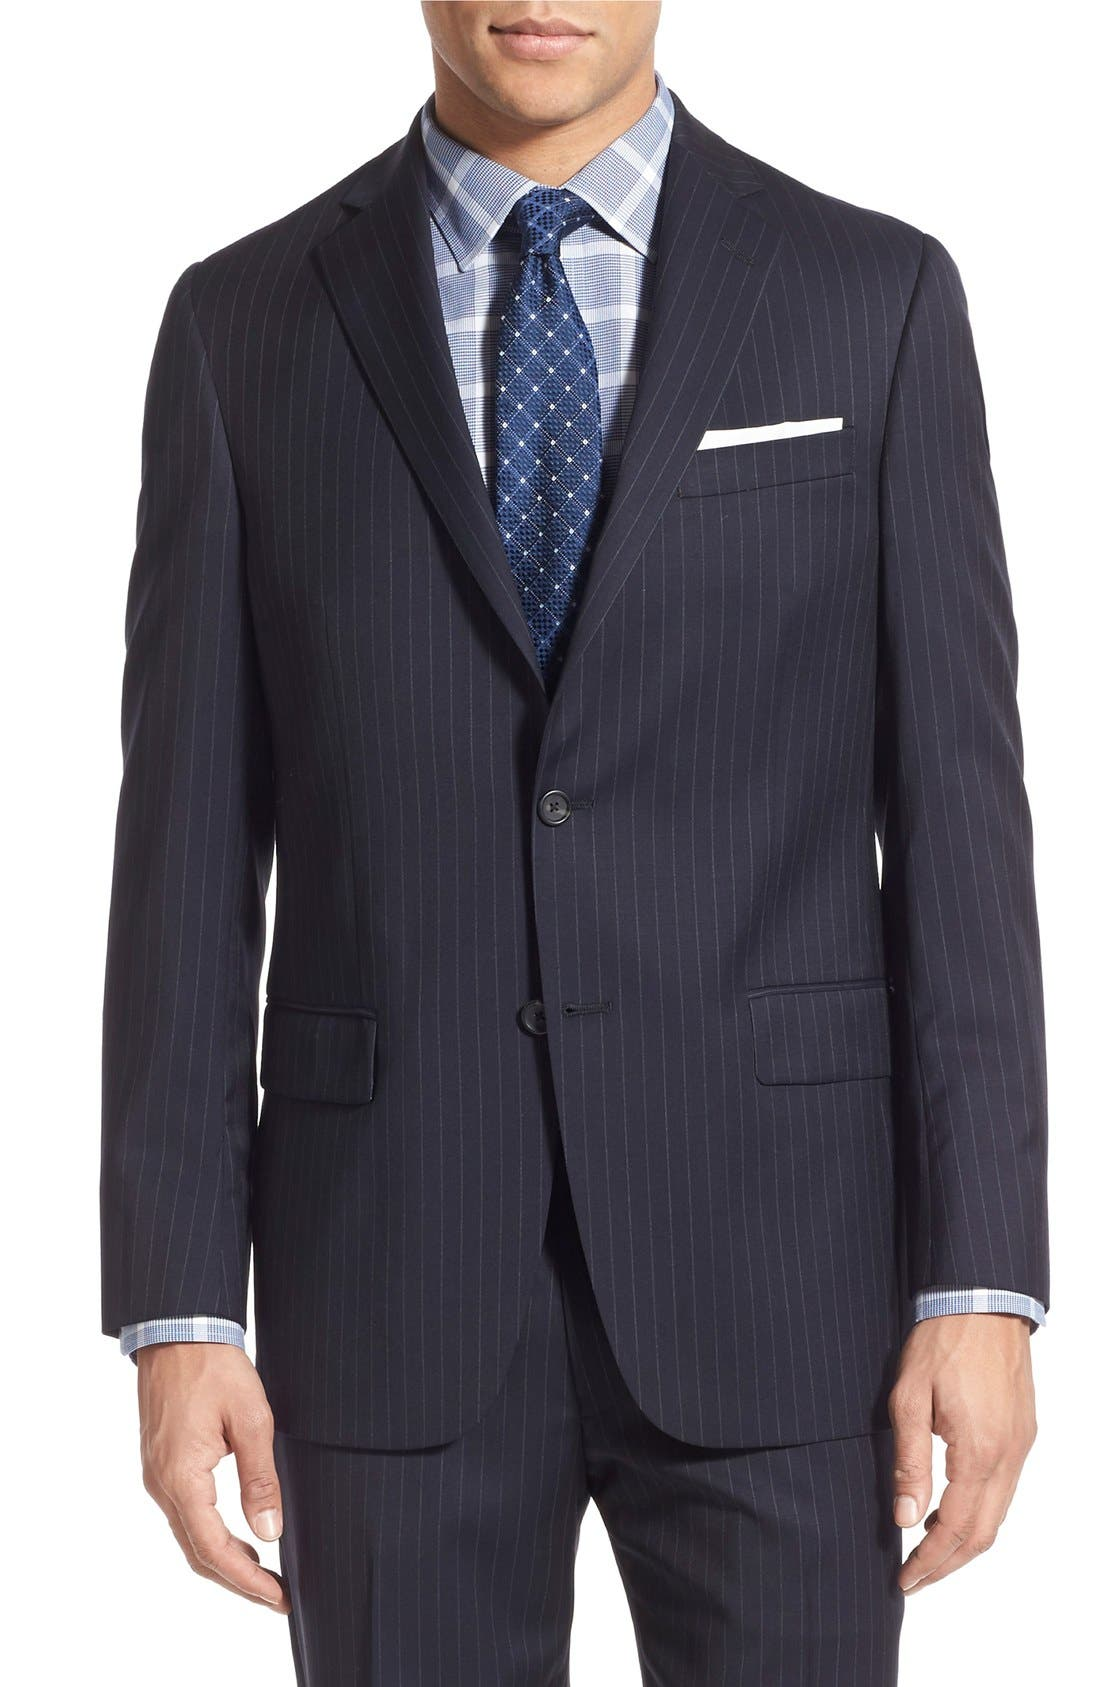 New York Classic Fit Stripe Wool Suit,                             Alternate thumbnail 4, color,                             Navy